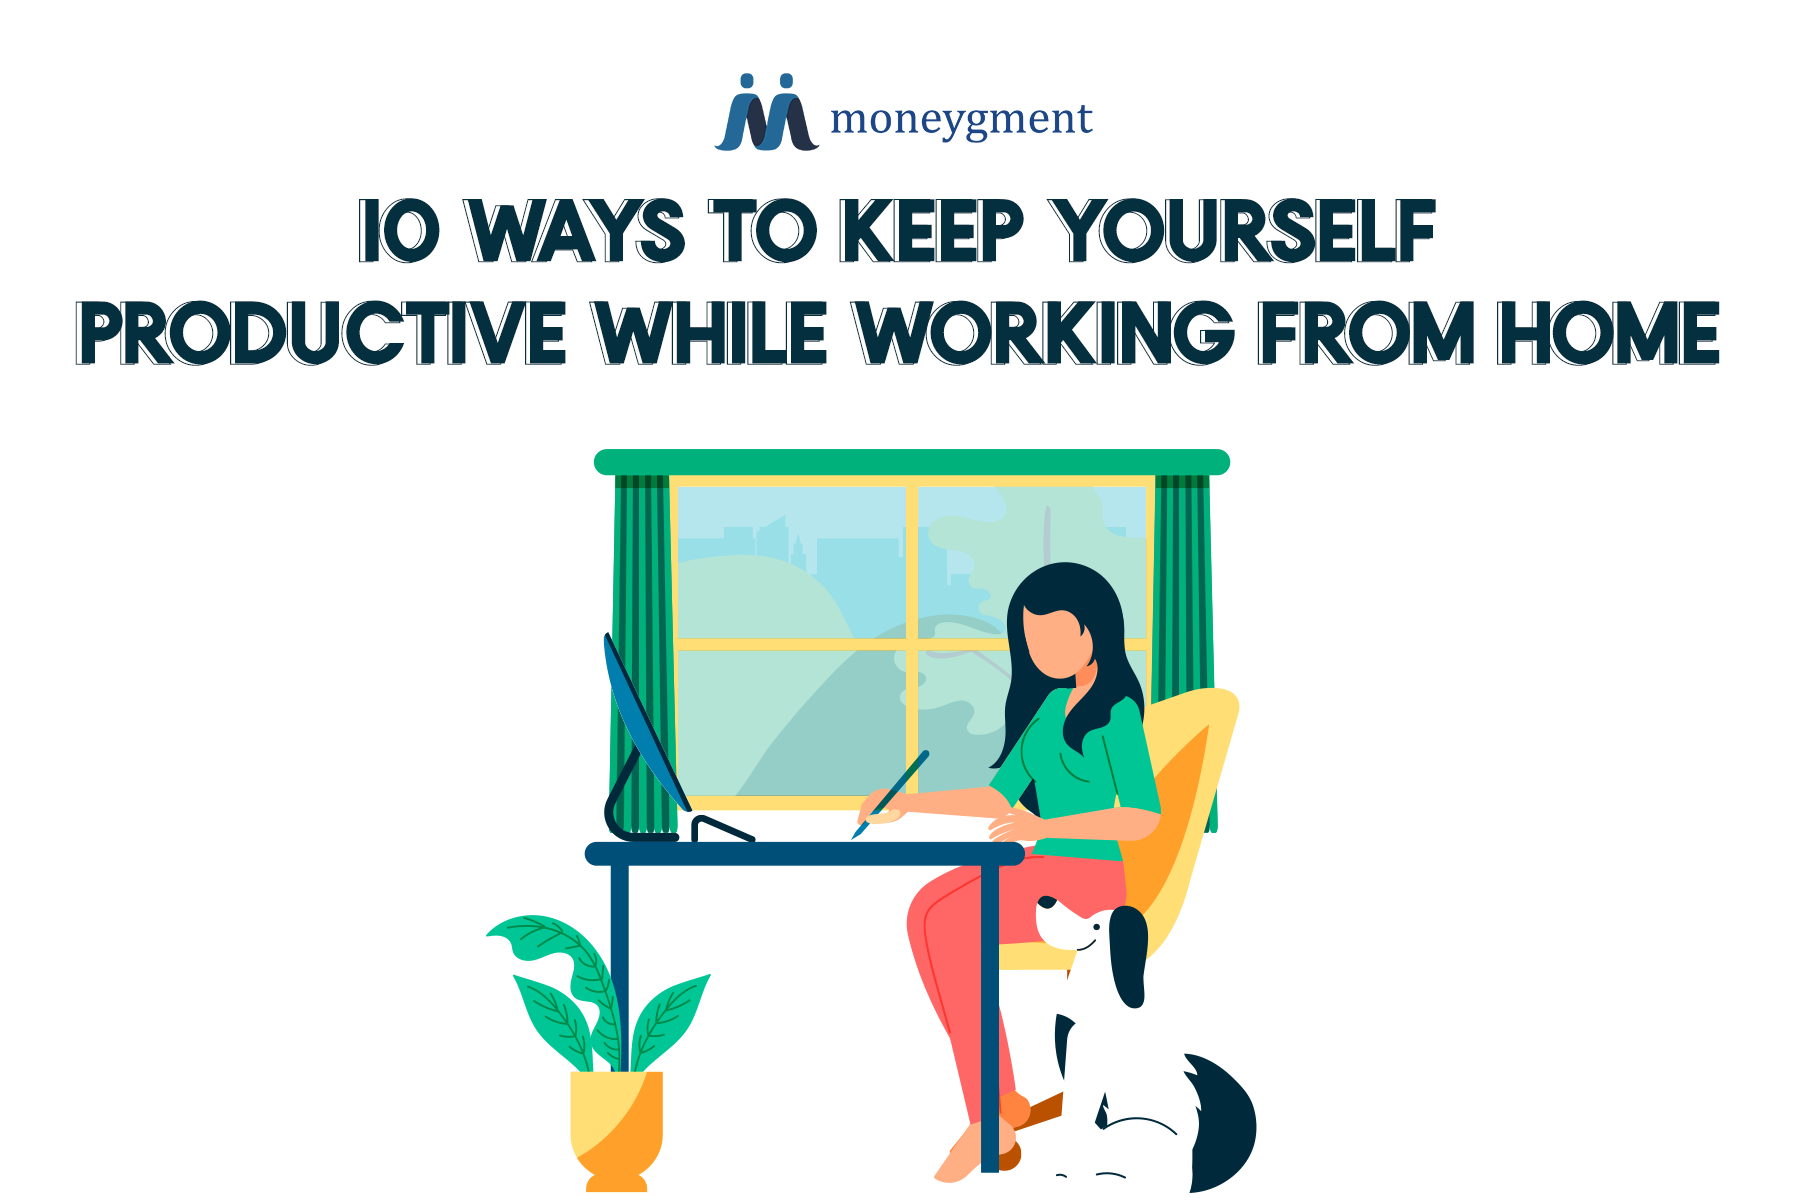 Top 10 ways to be productive